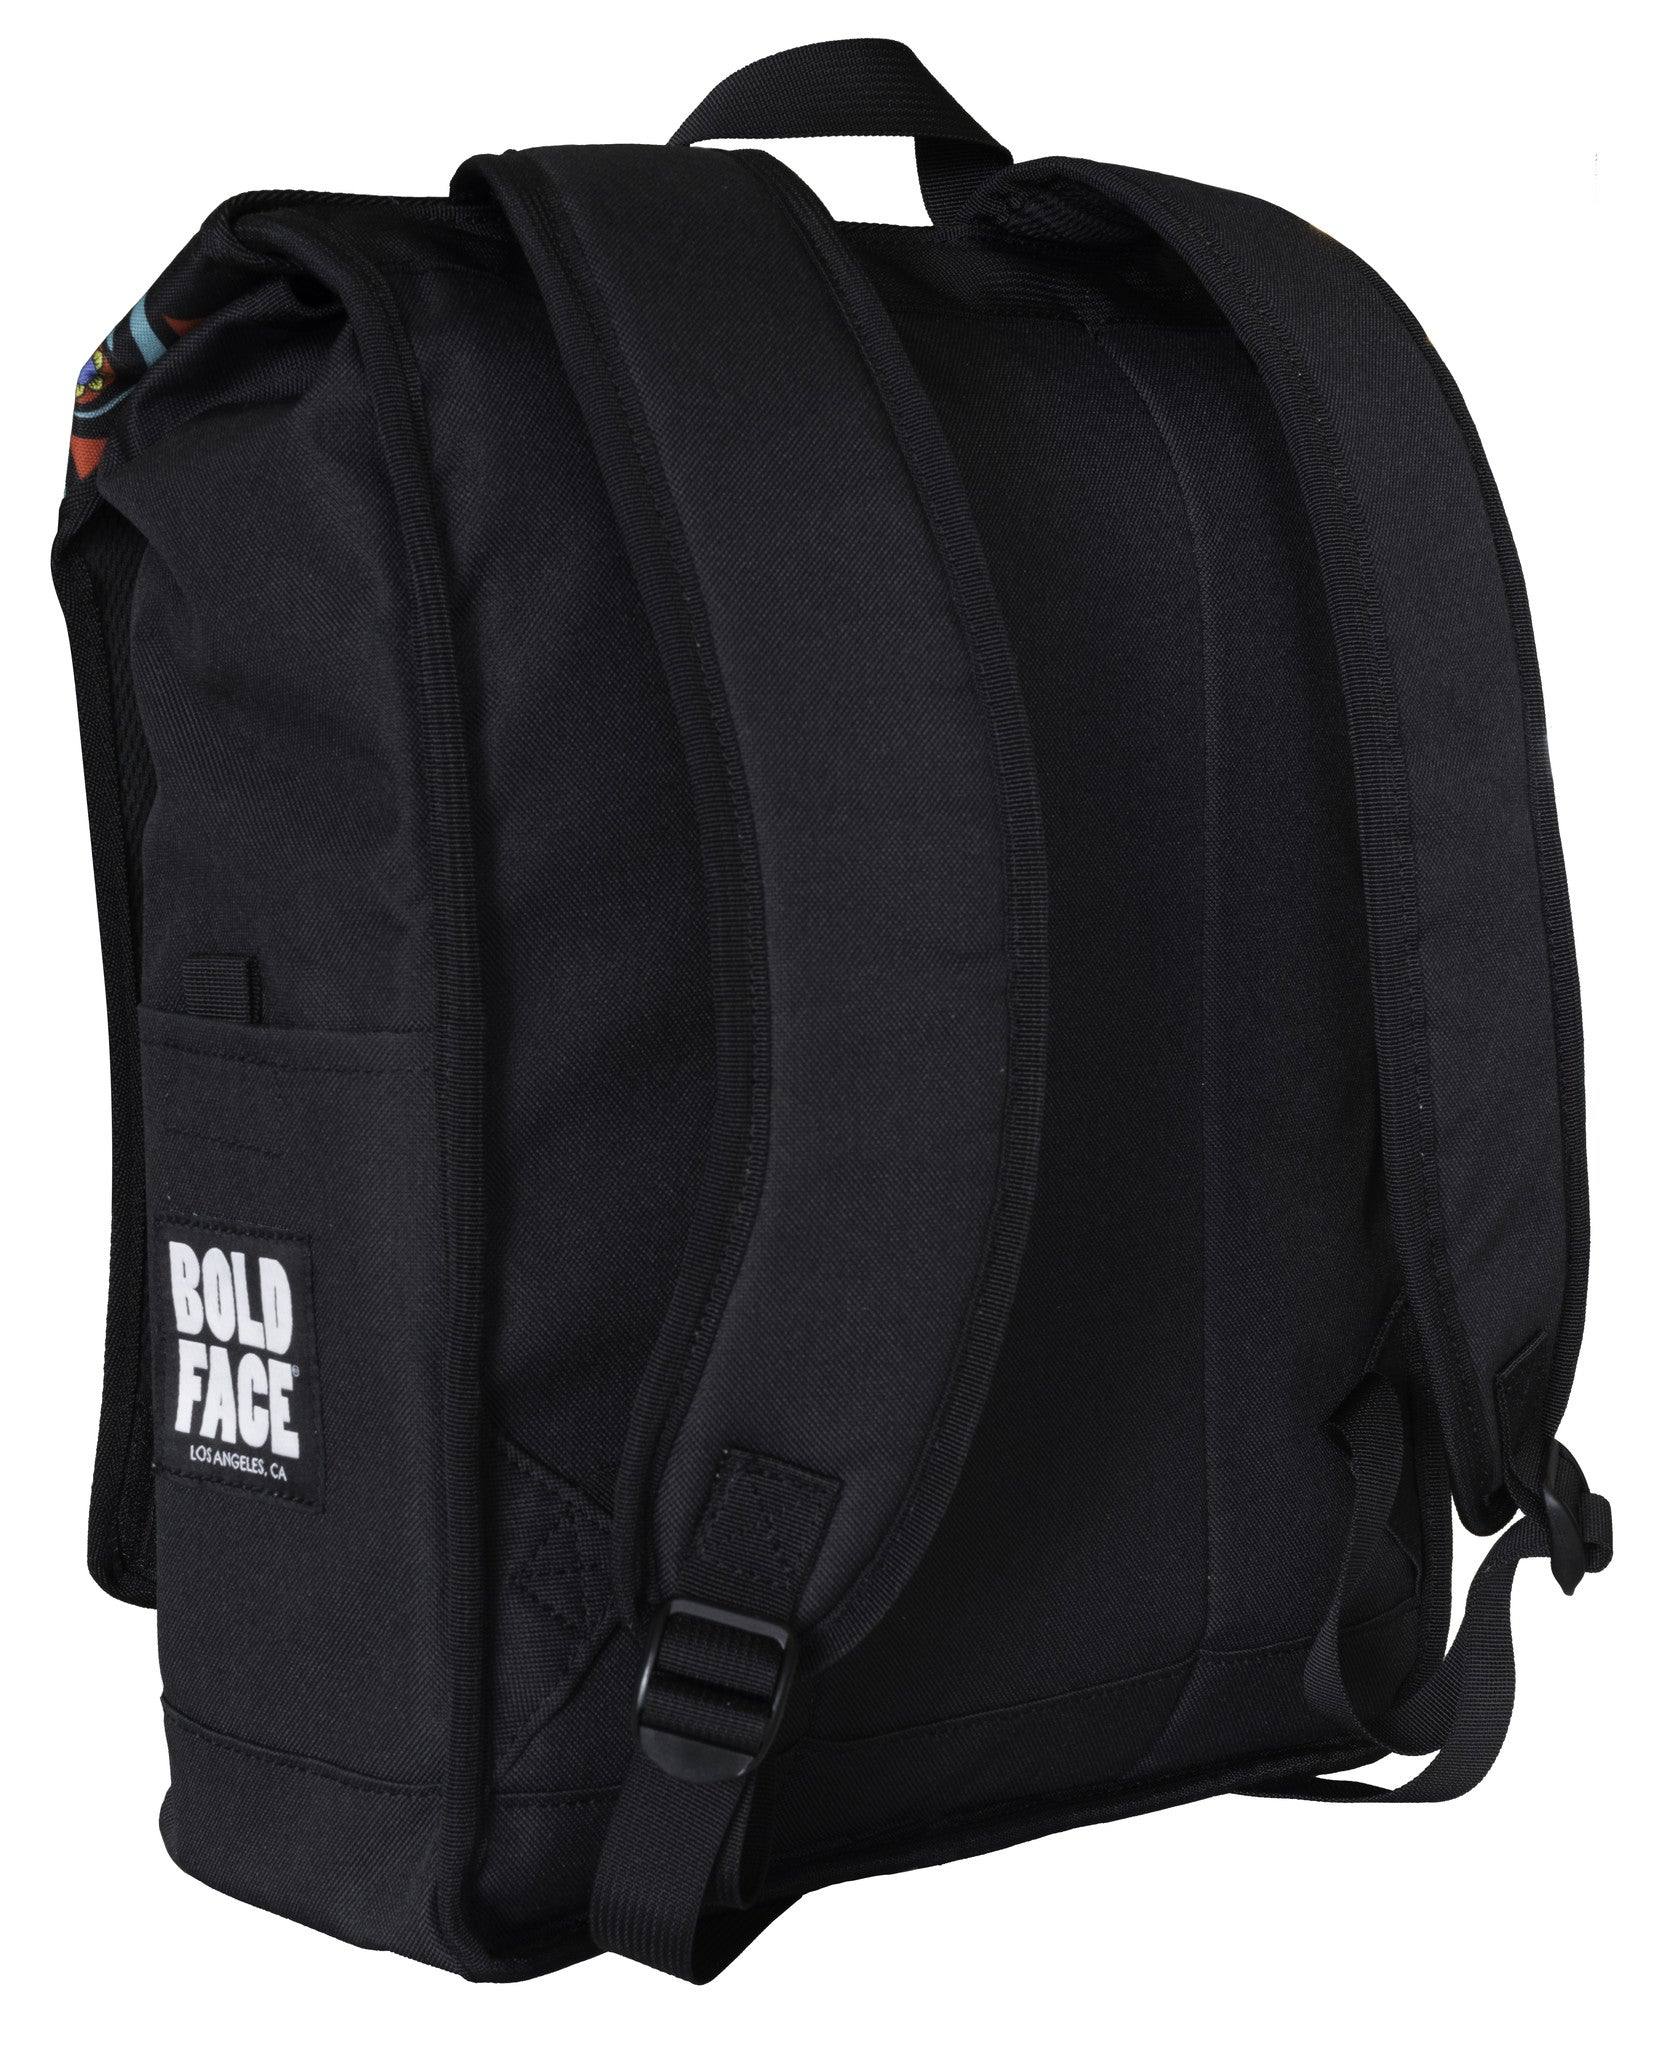 Create Your Own Custom Printed Backpack with Interchangeable Face ... bde125bf9